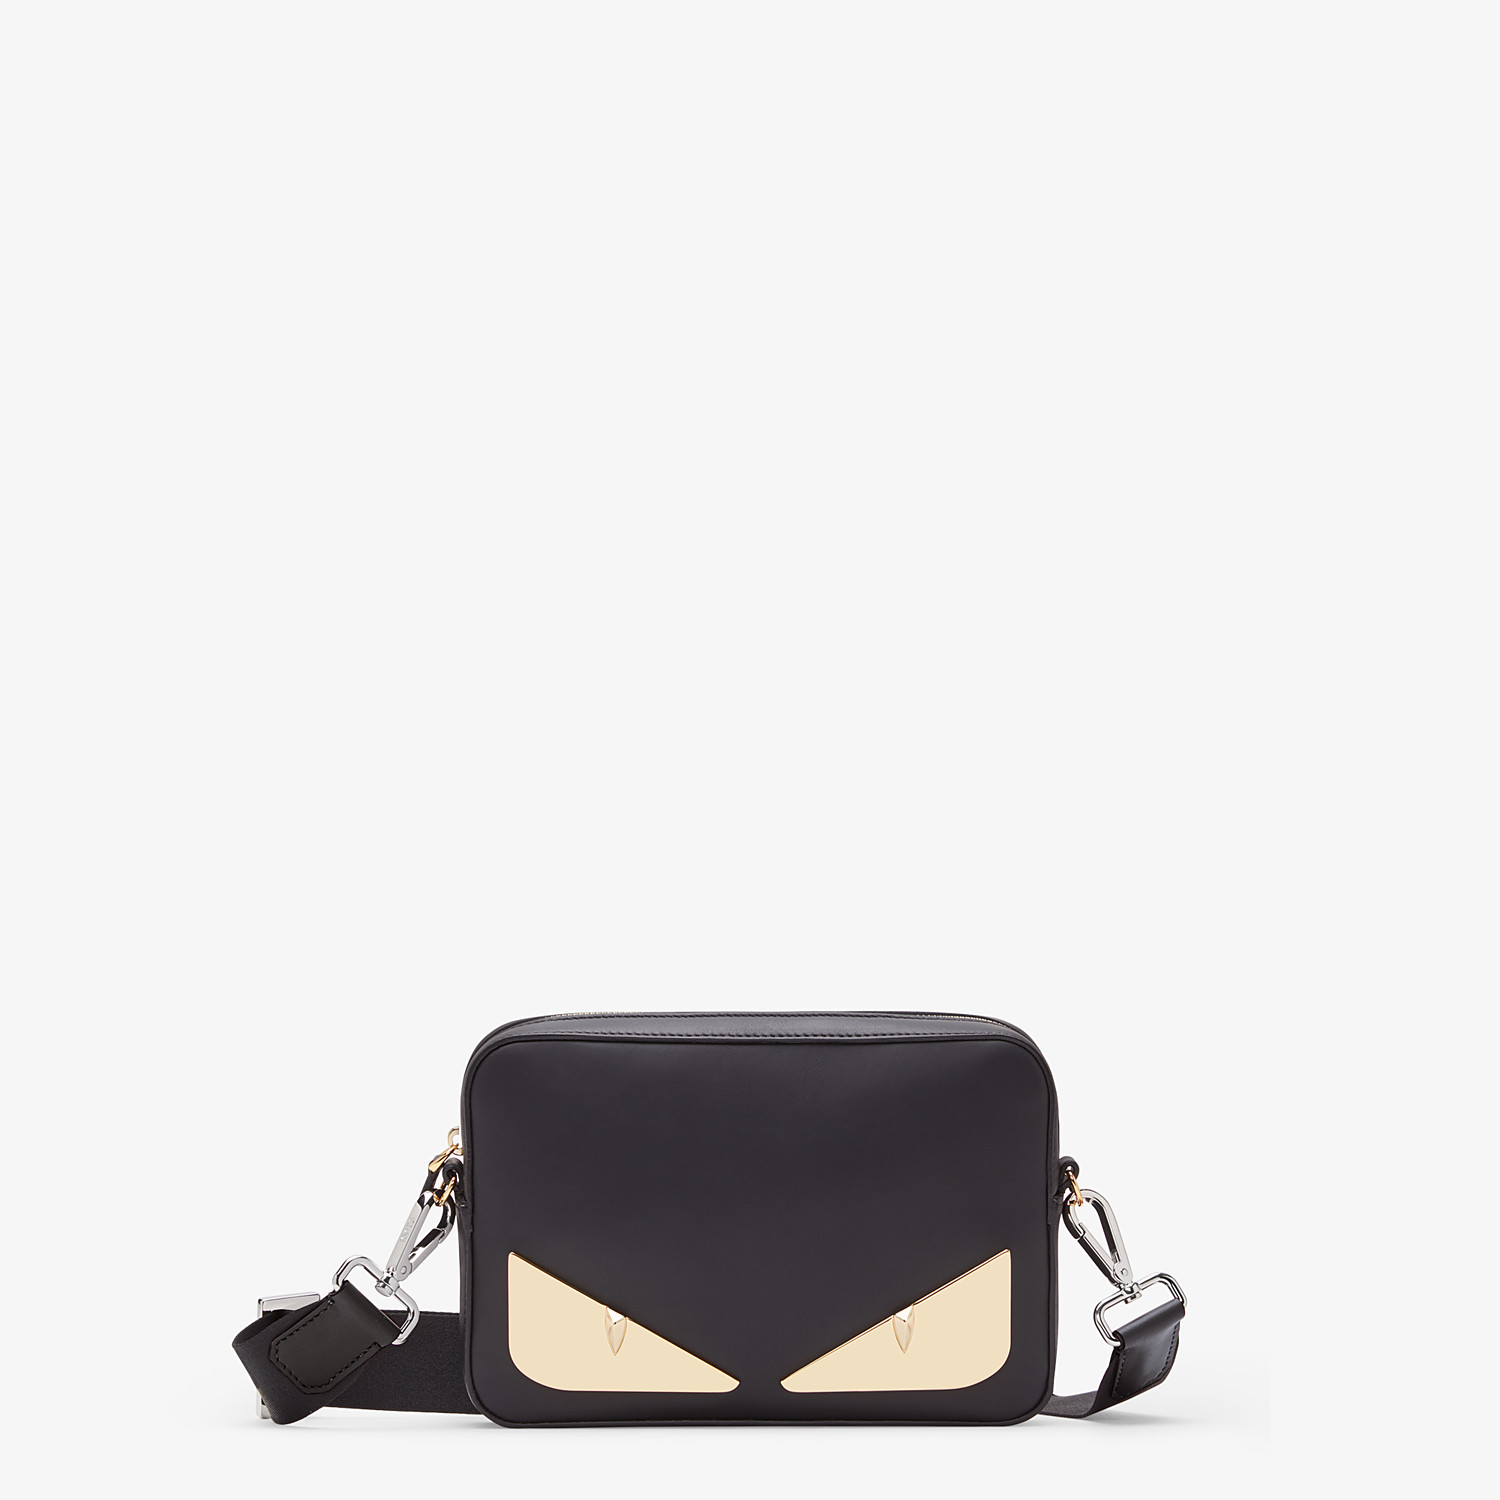 FENDI CAMERA CASE - Black, calf leather bag - view 1 detail